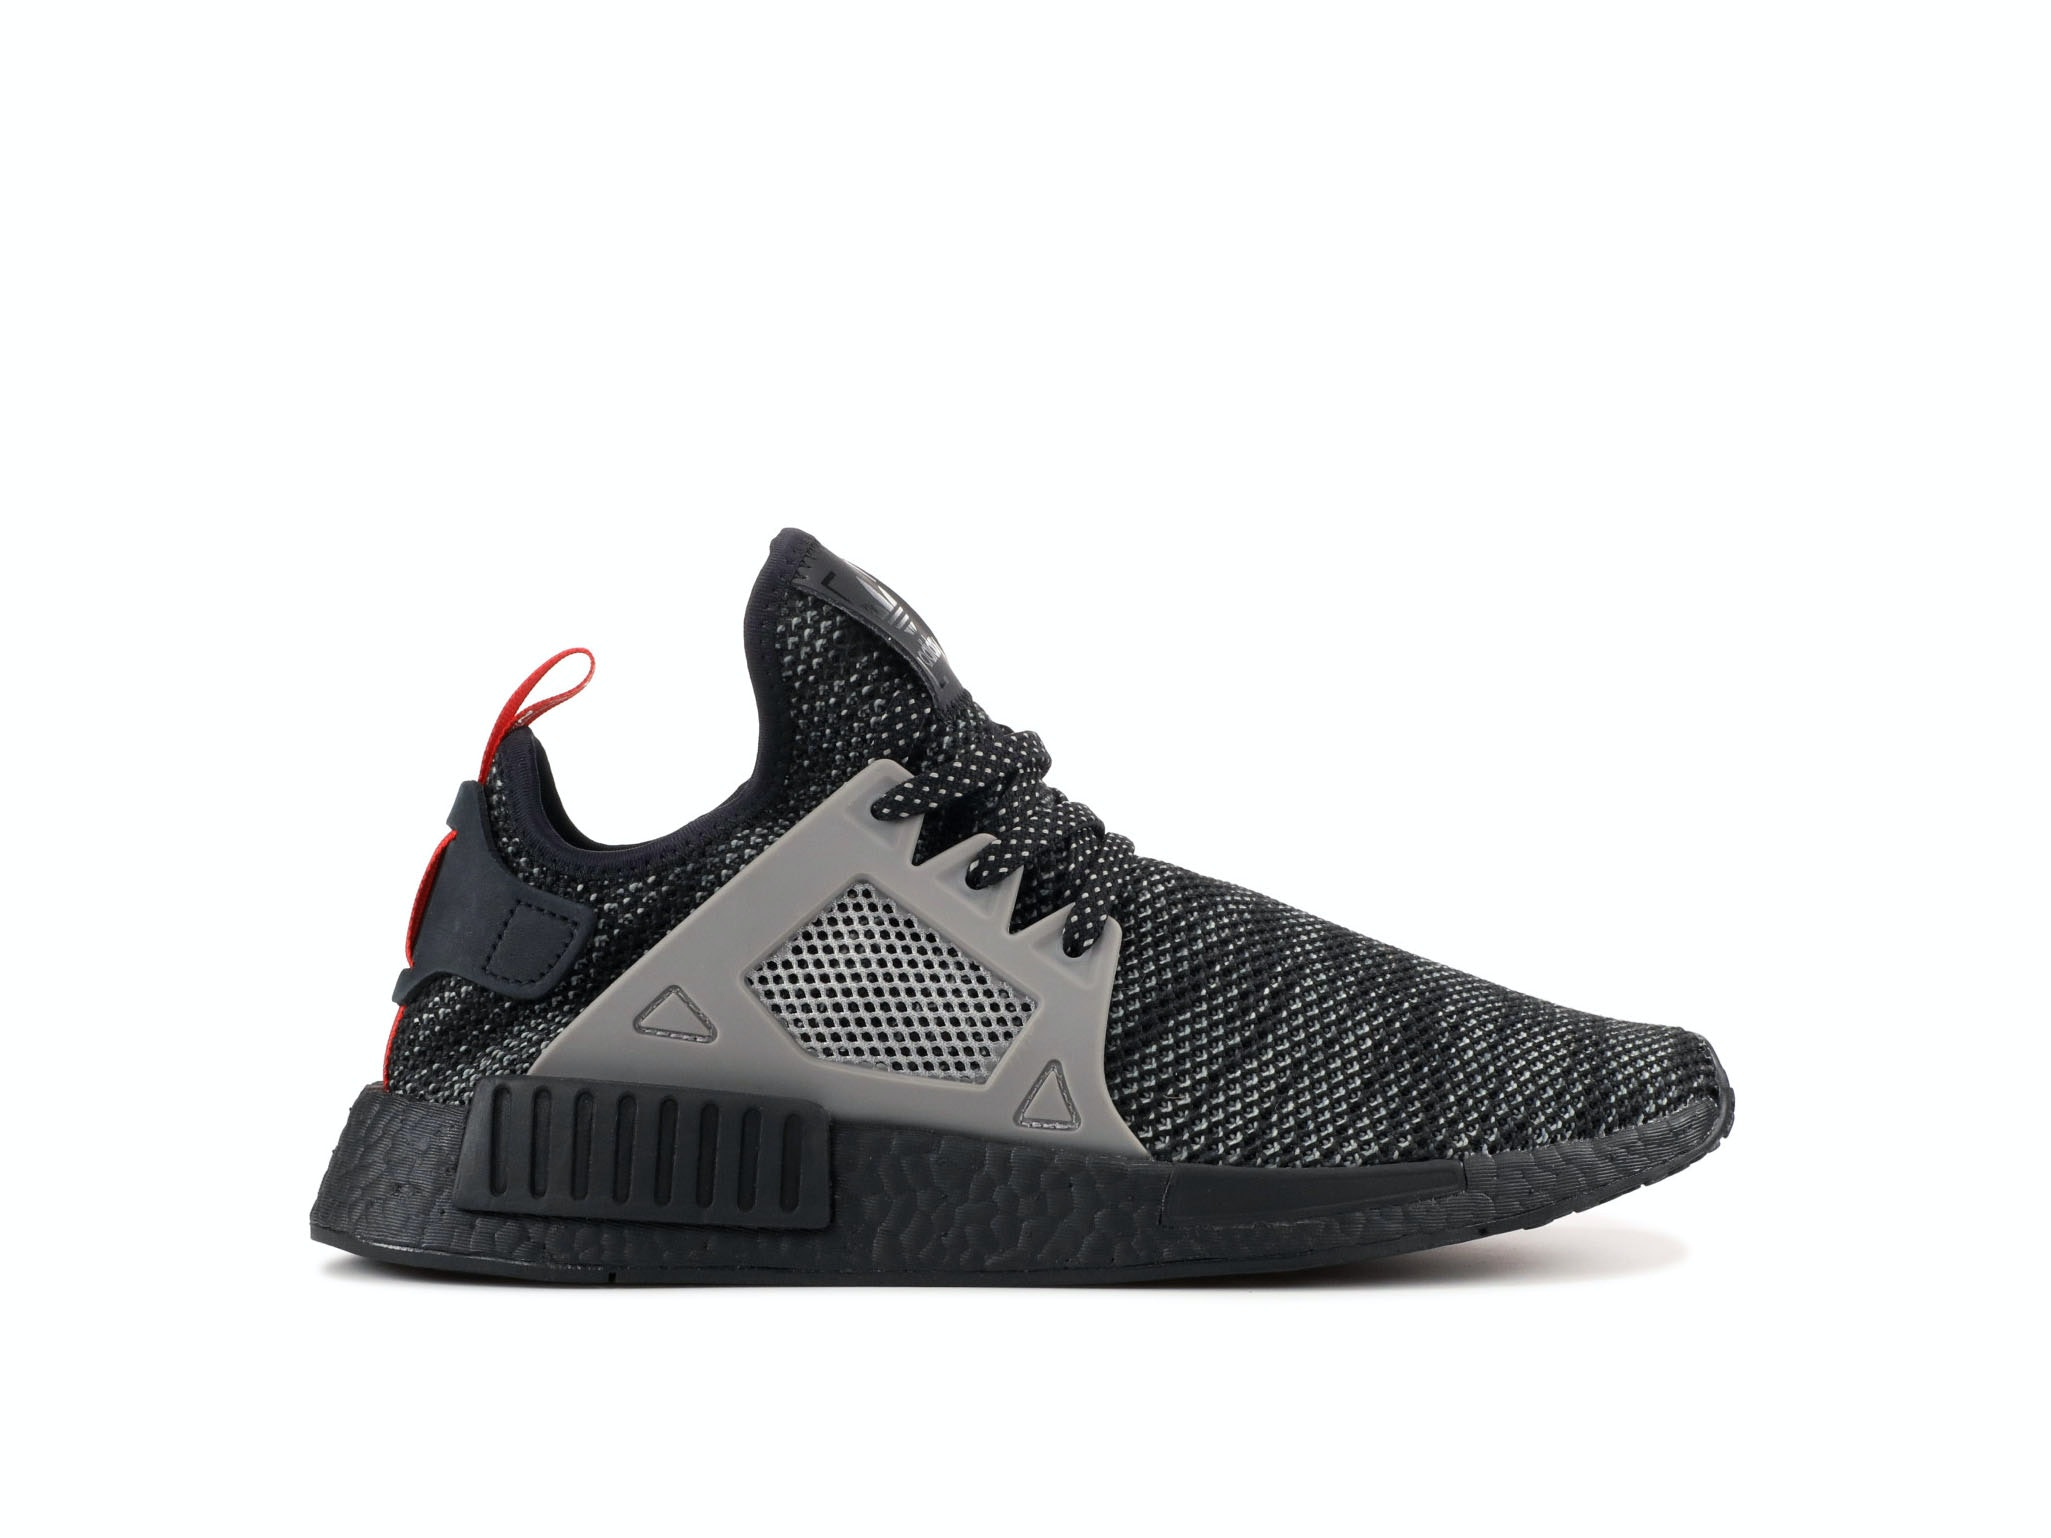 new arrivals 1c39a 584c8 Shop JD Sports NMD XR1 Online | Laced